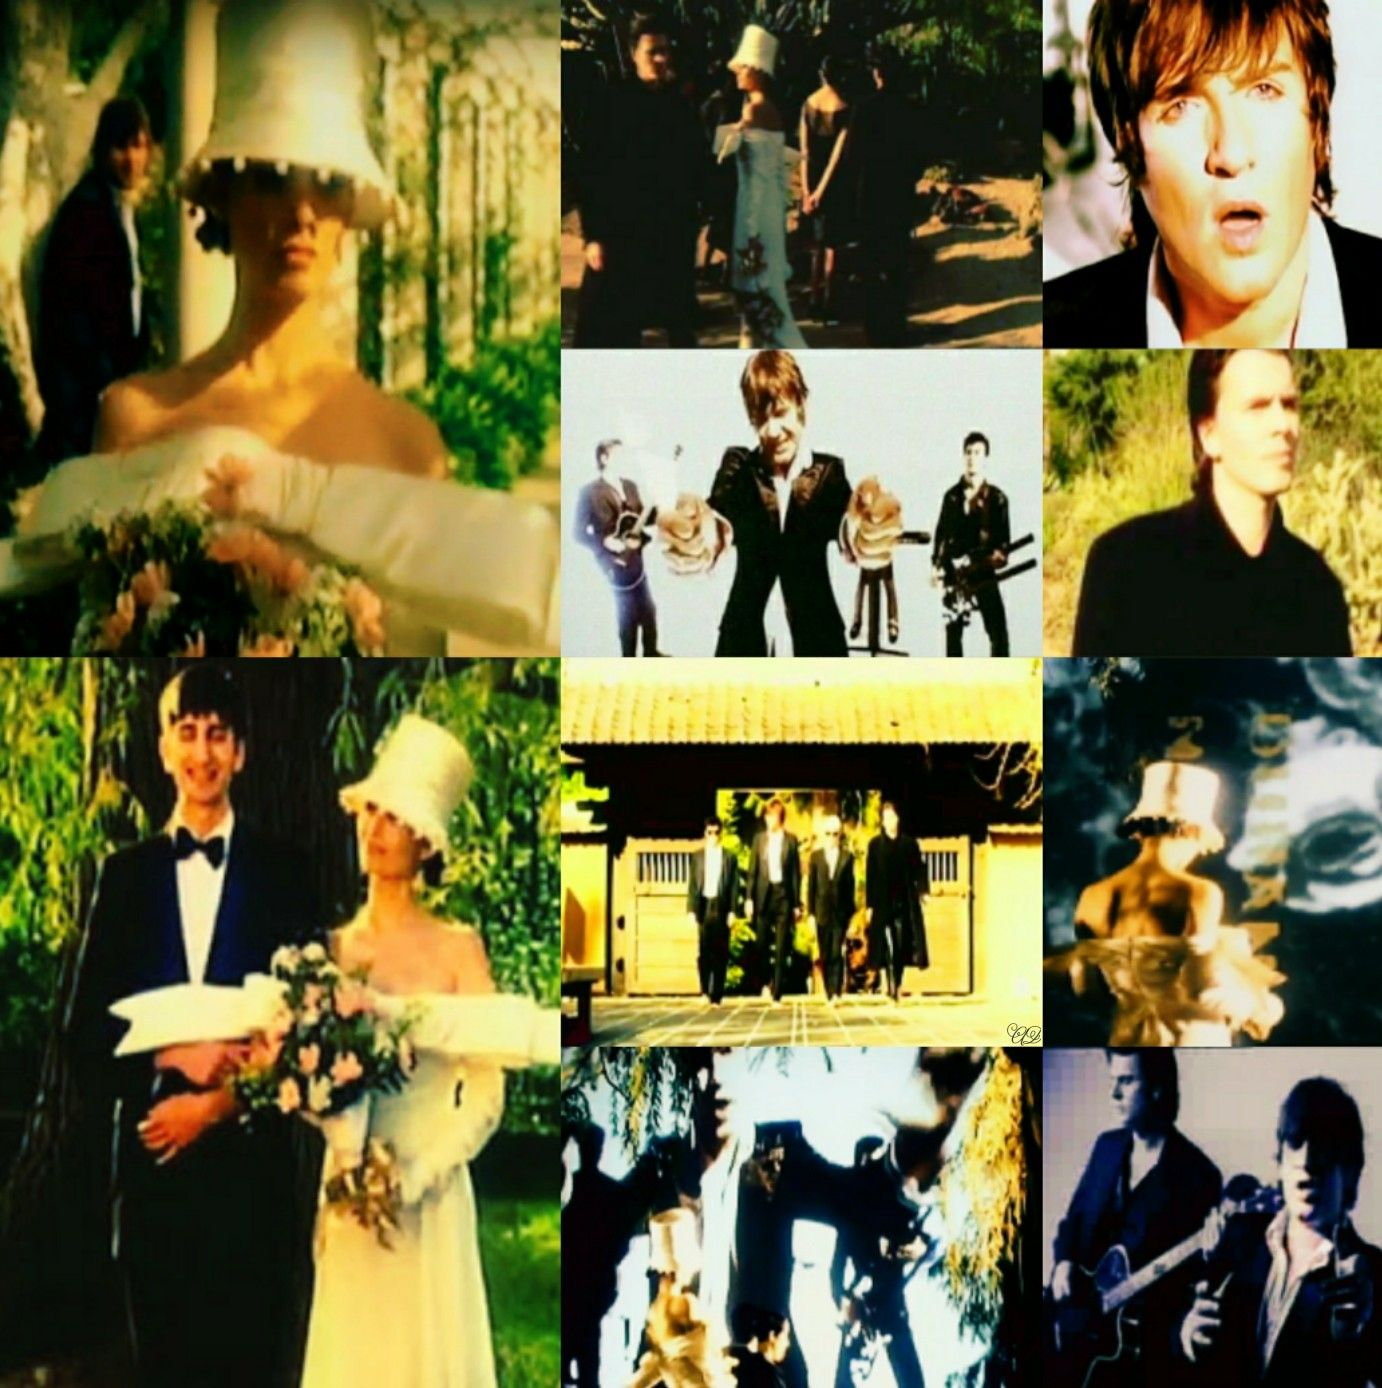 Duran Duran Ordinary World video collage